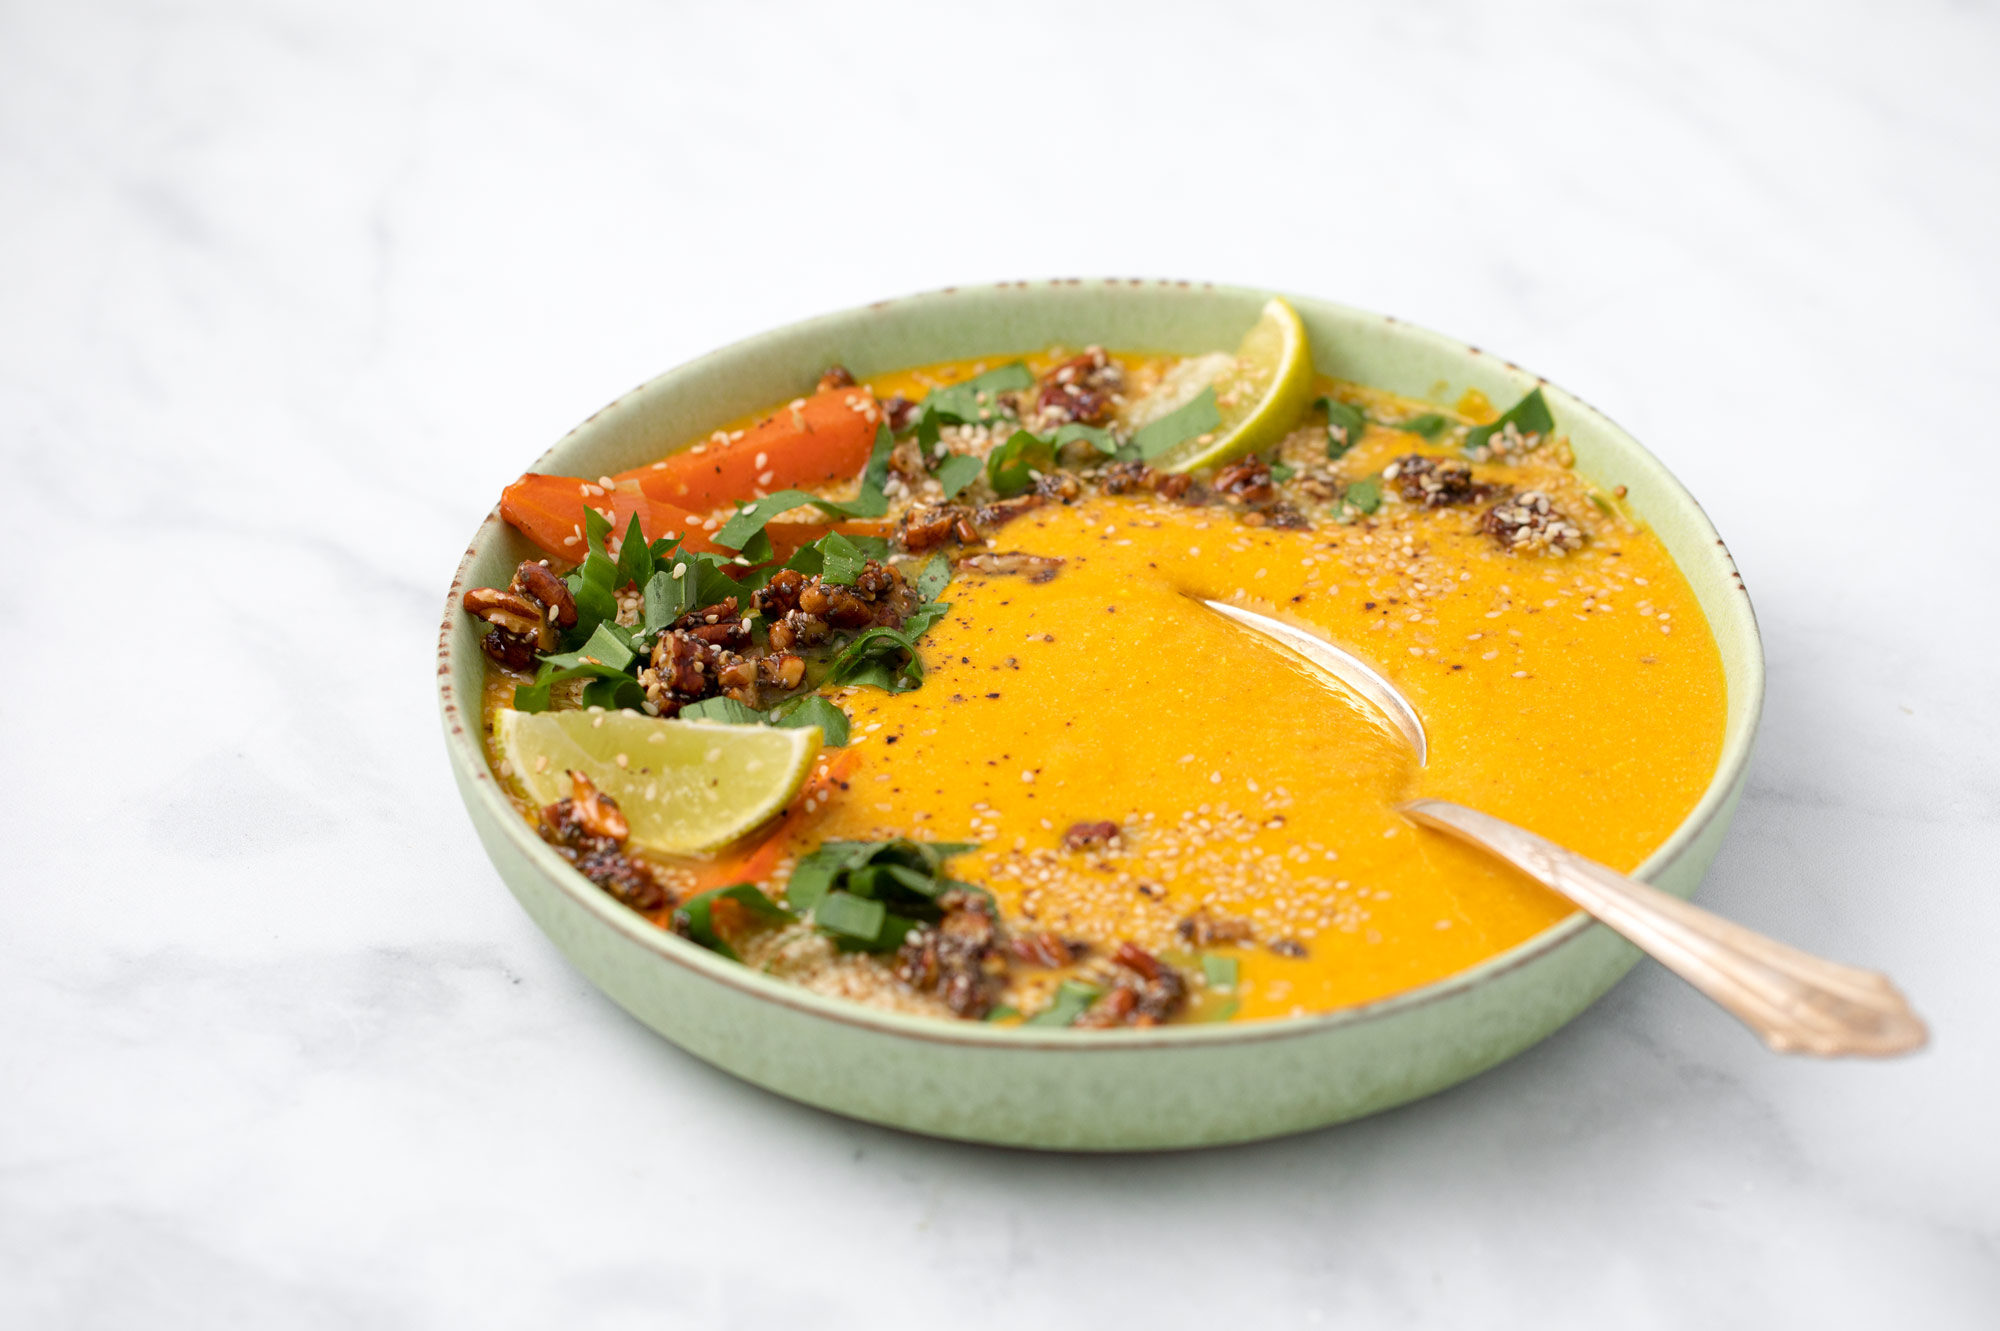 Miso-Carrot Soup with Spring Topping Wild Garlic and Lime by Bakd&Raw